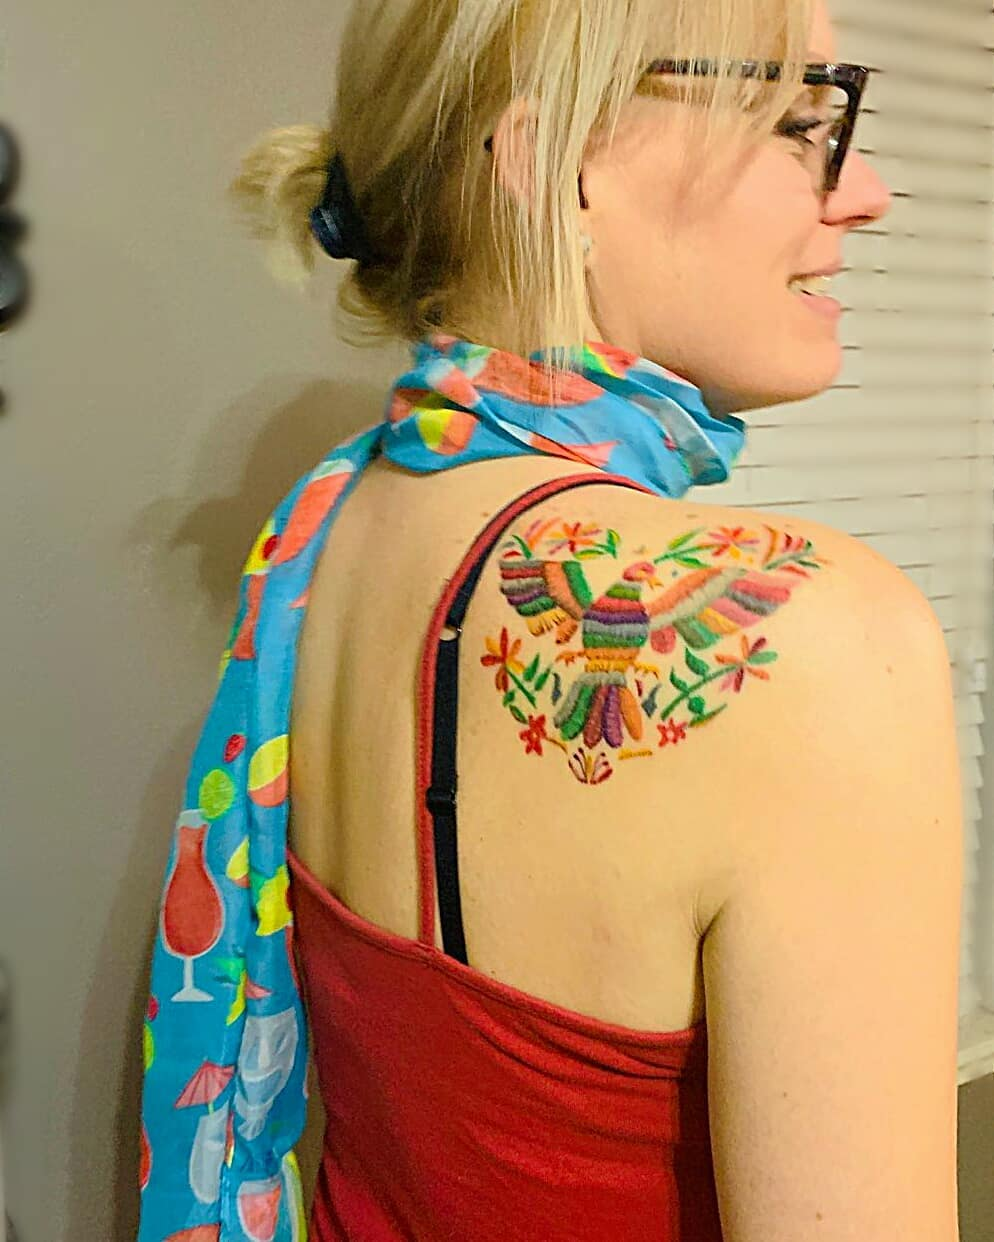 Impressive image of an embroidery tattoo